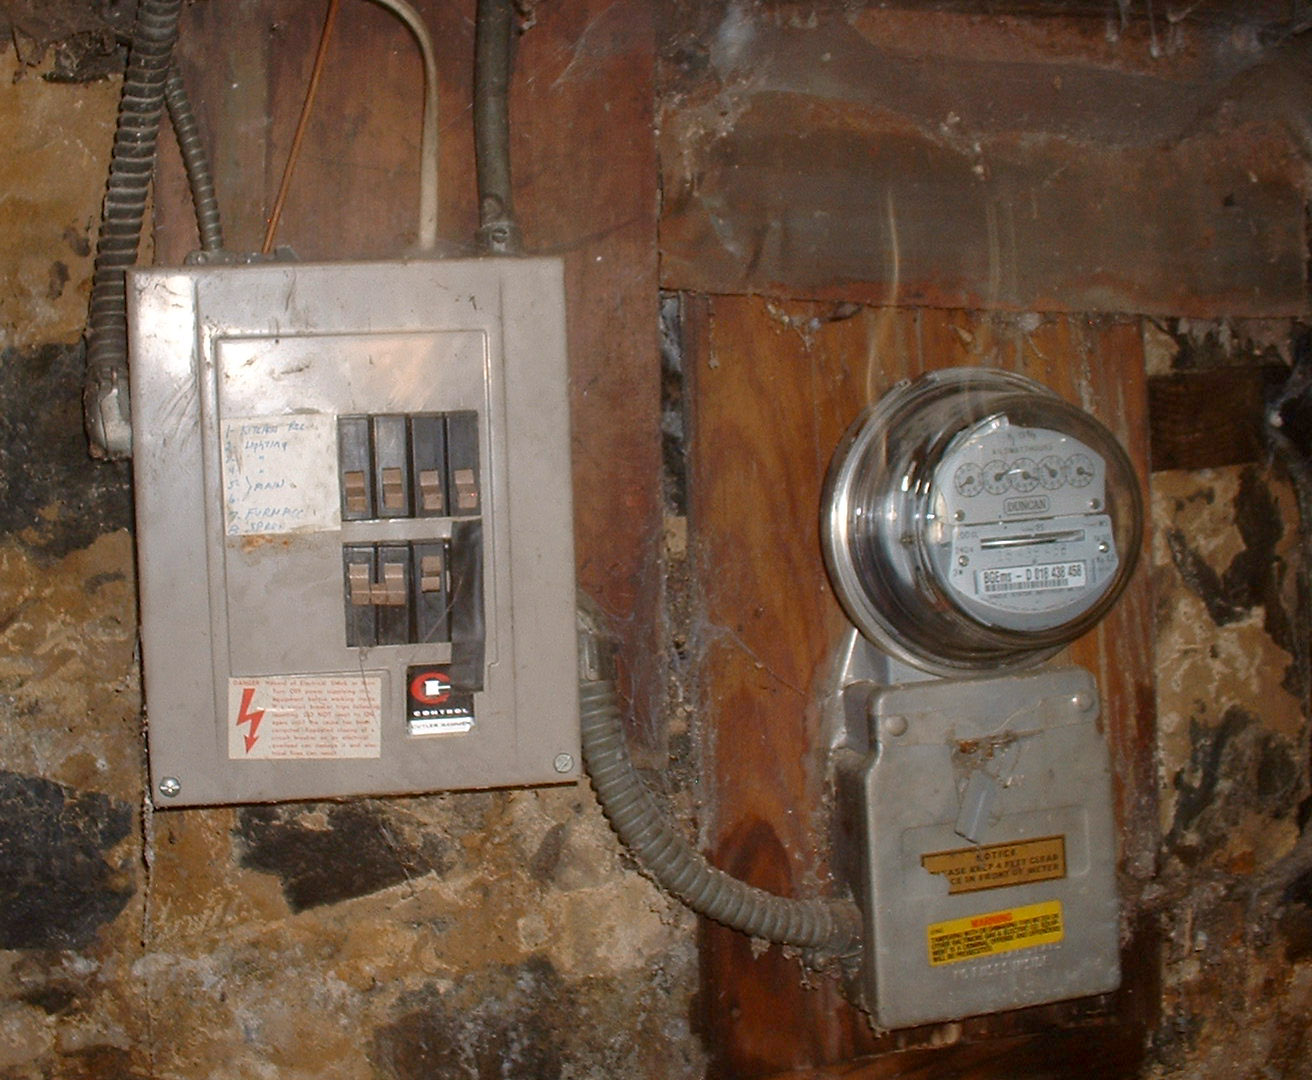 basement water heater and furnace electric box is circuit breakers